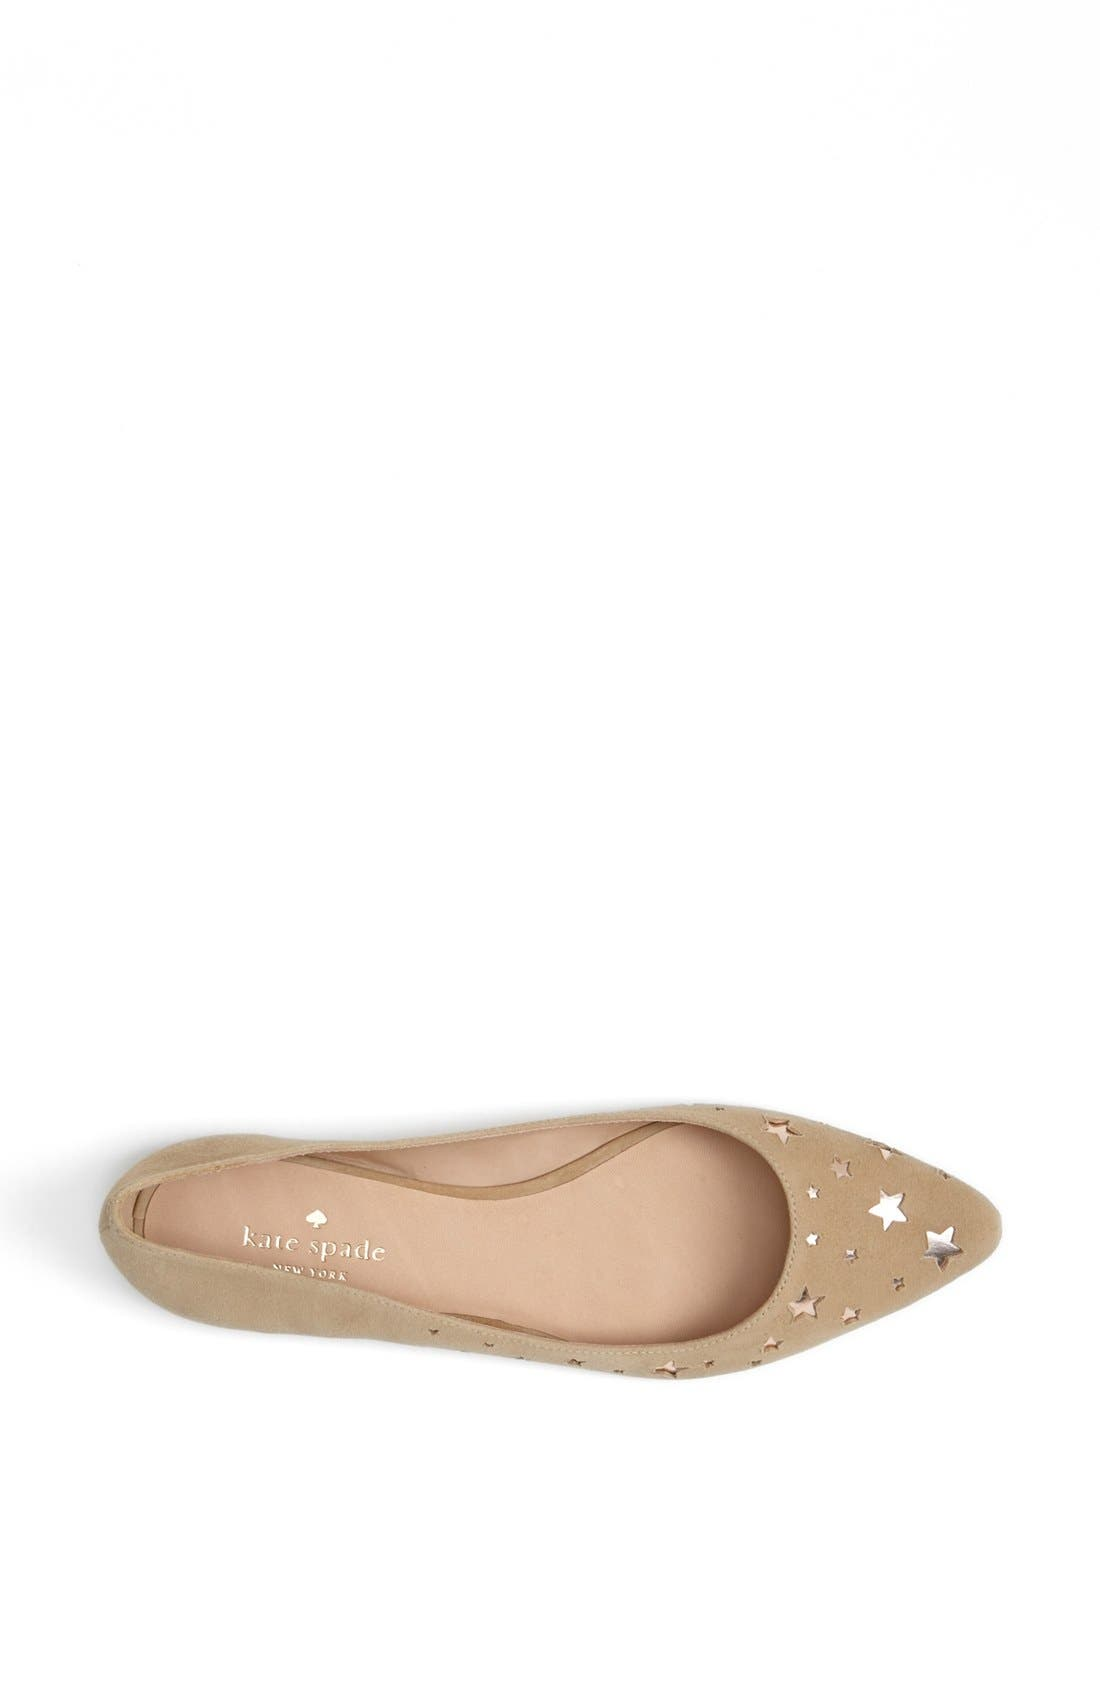 Alternate Image 3  - kate spade new york 'evennie' flat